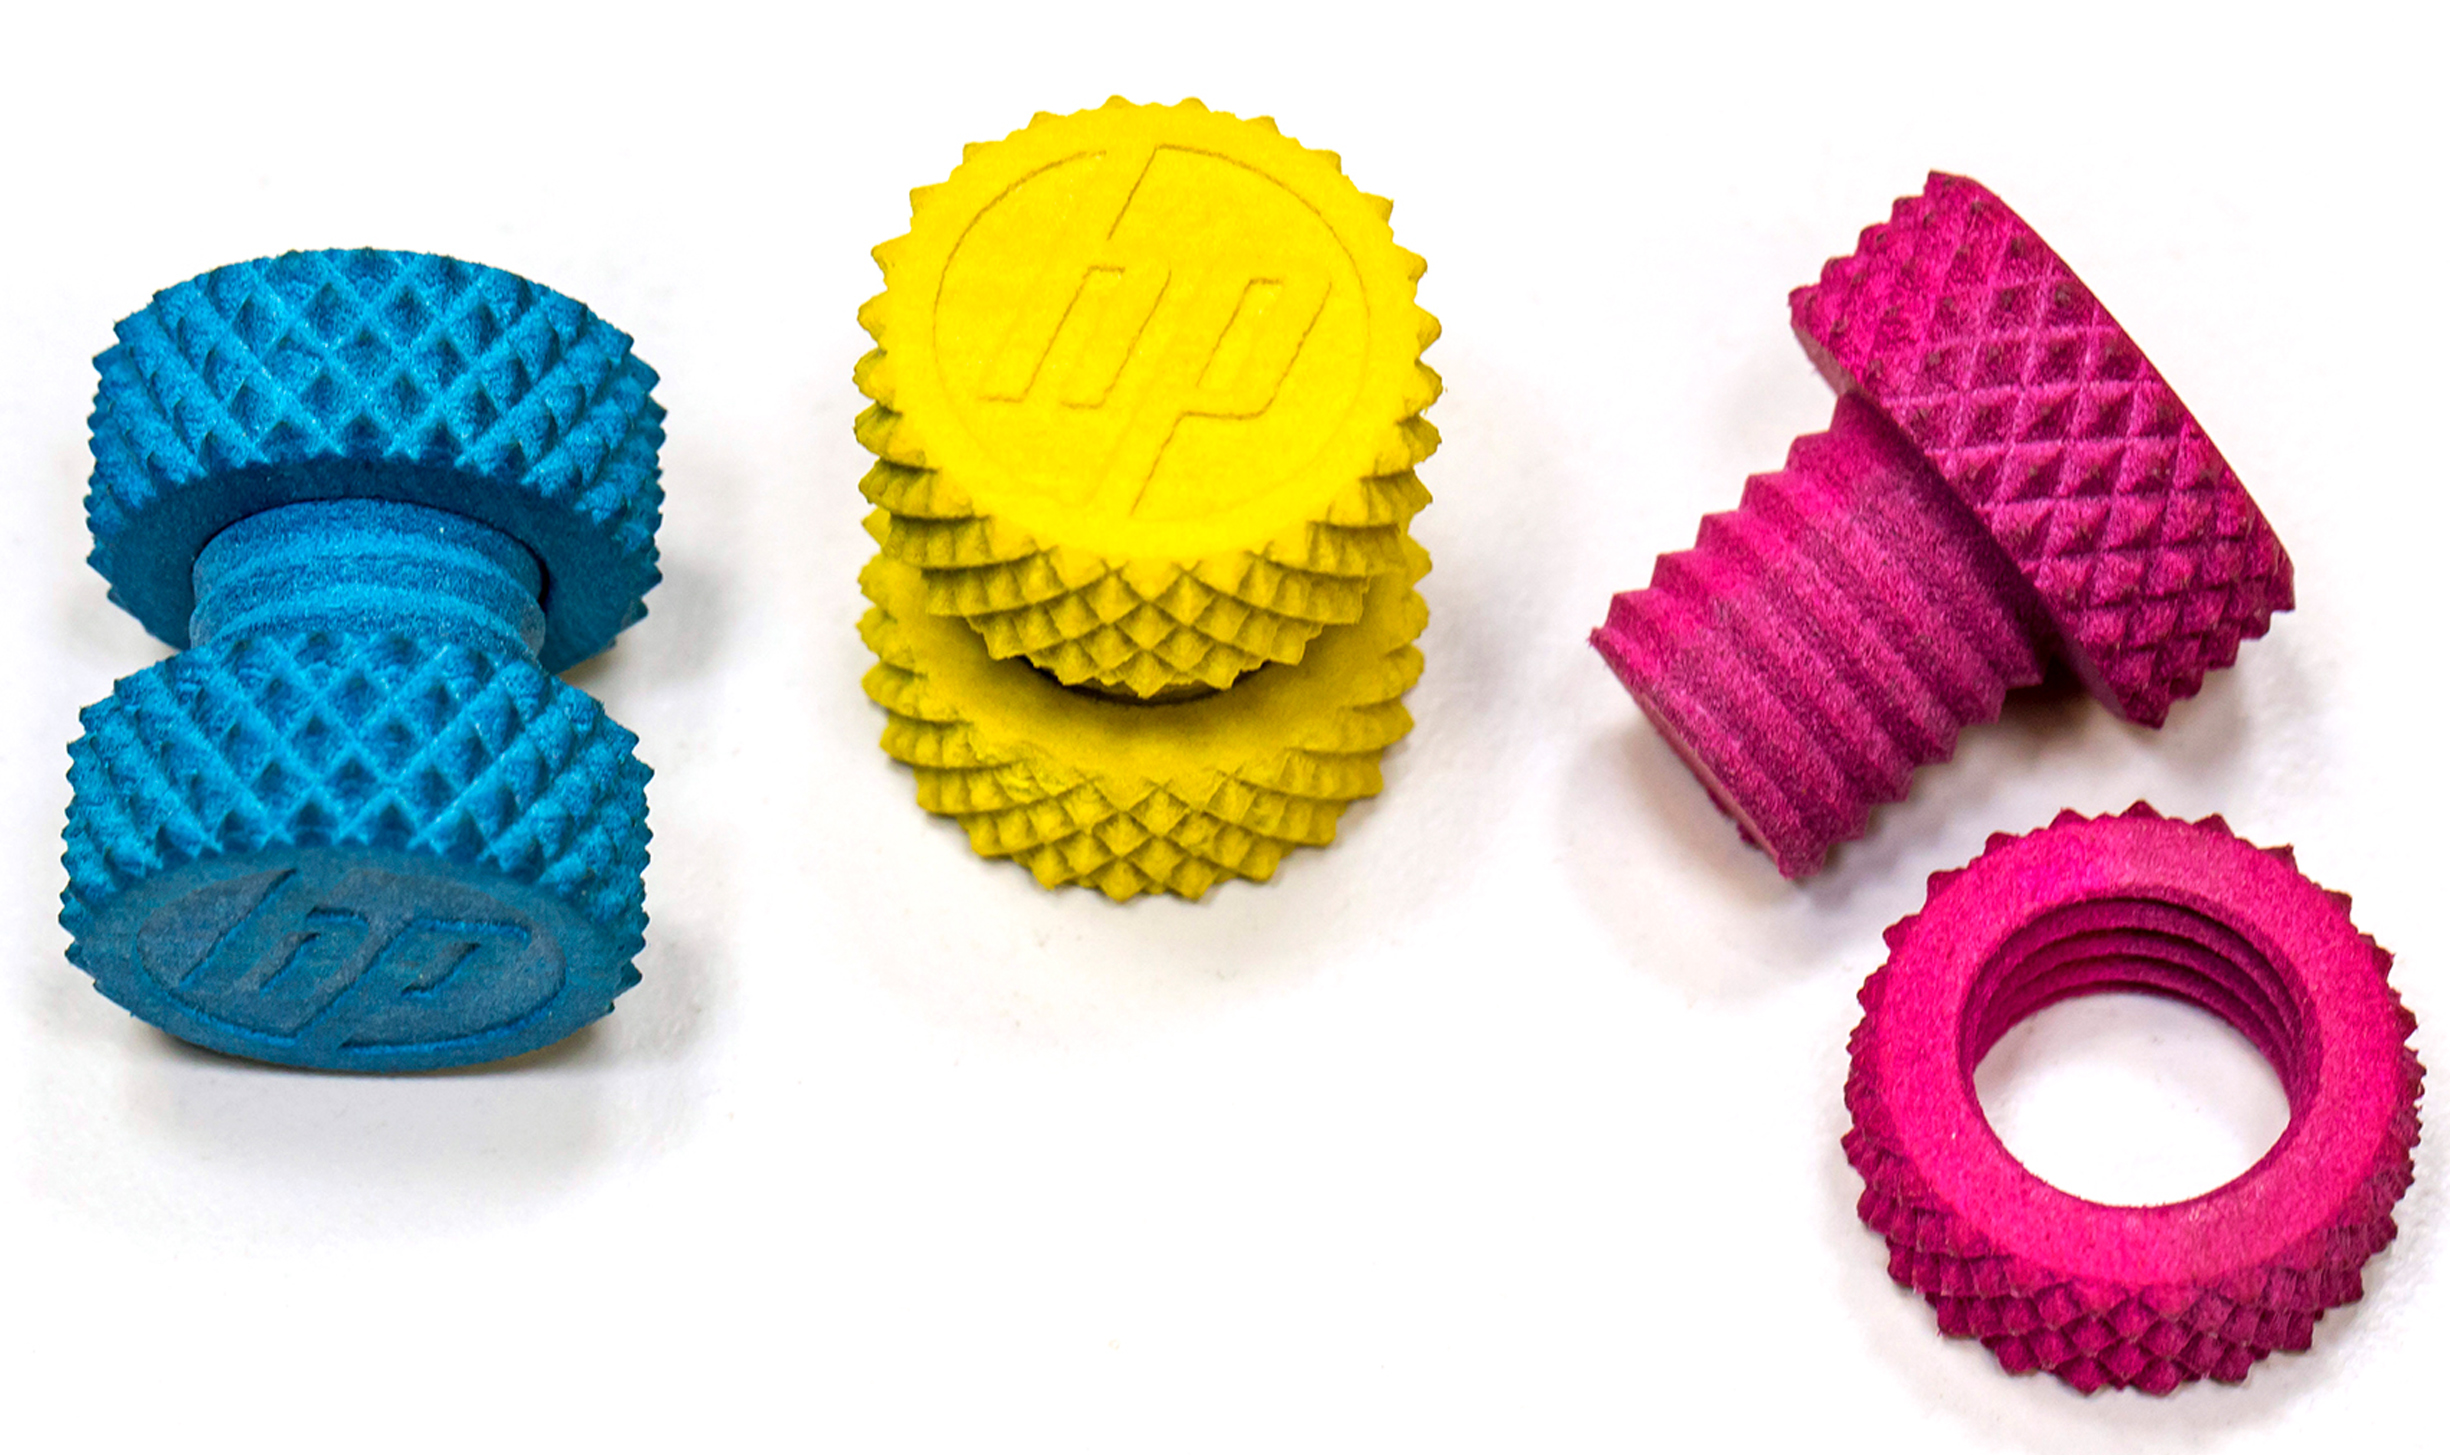 Samples from HP's forthcoming multi-jet 3-D printers